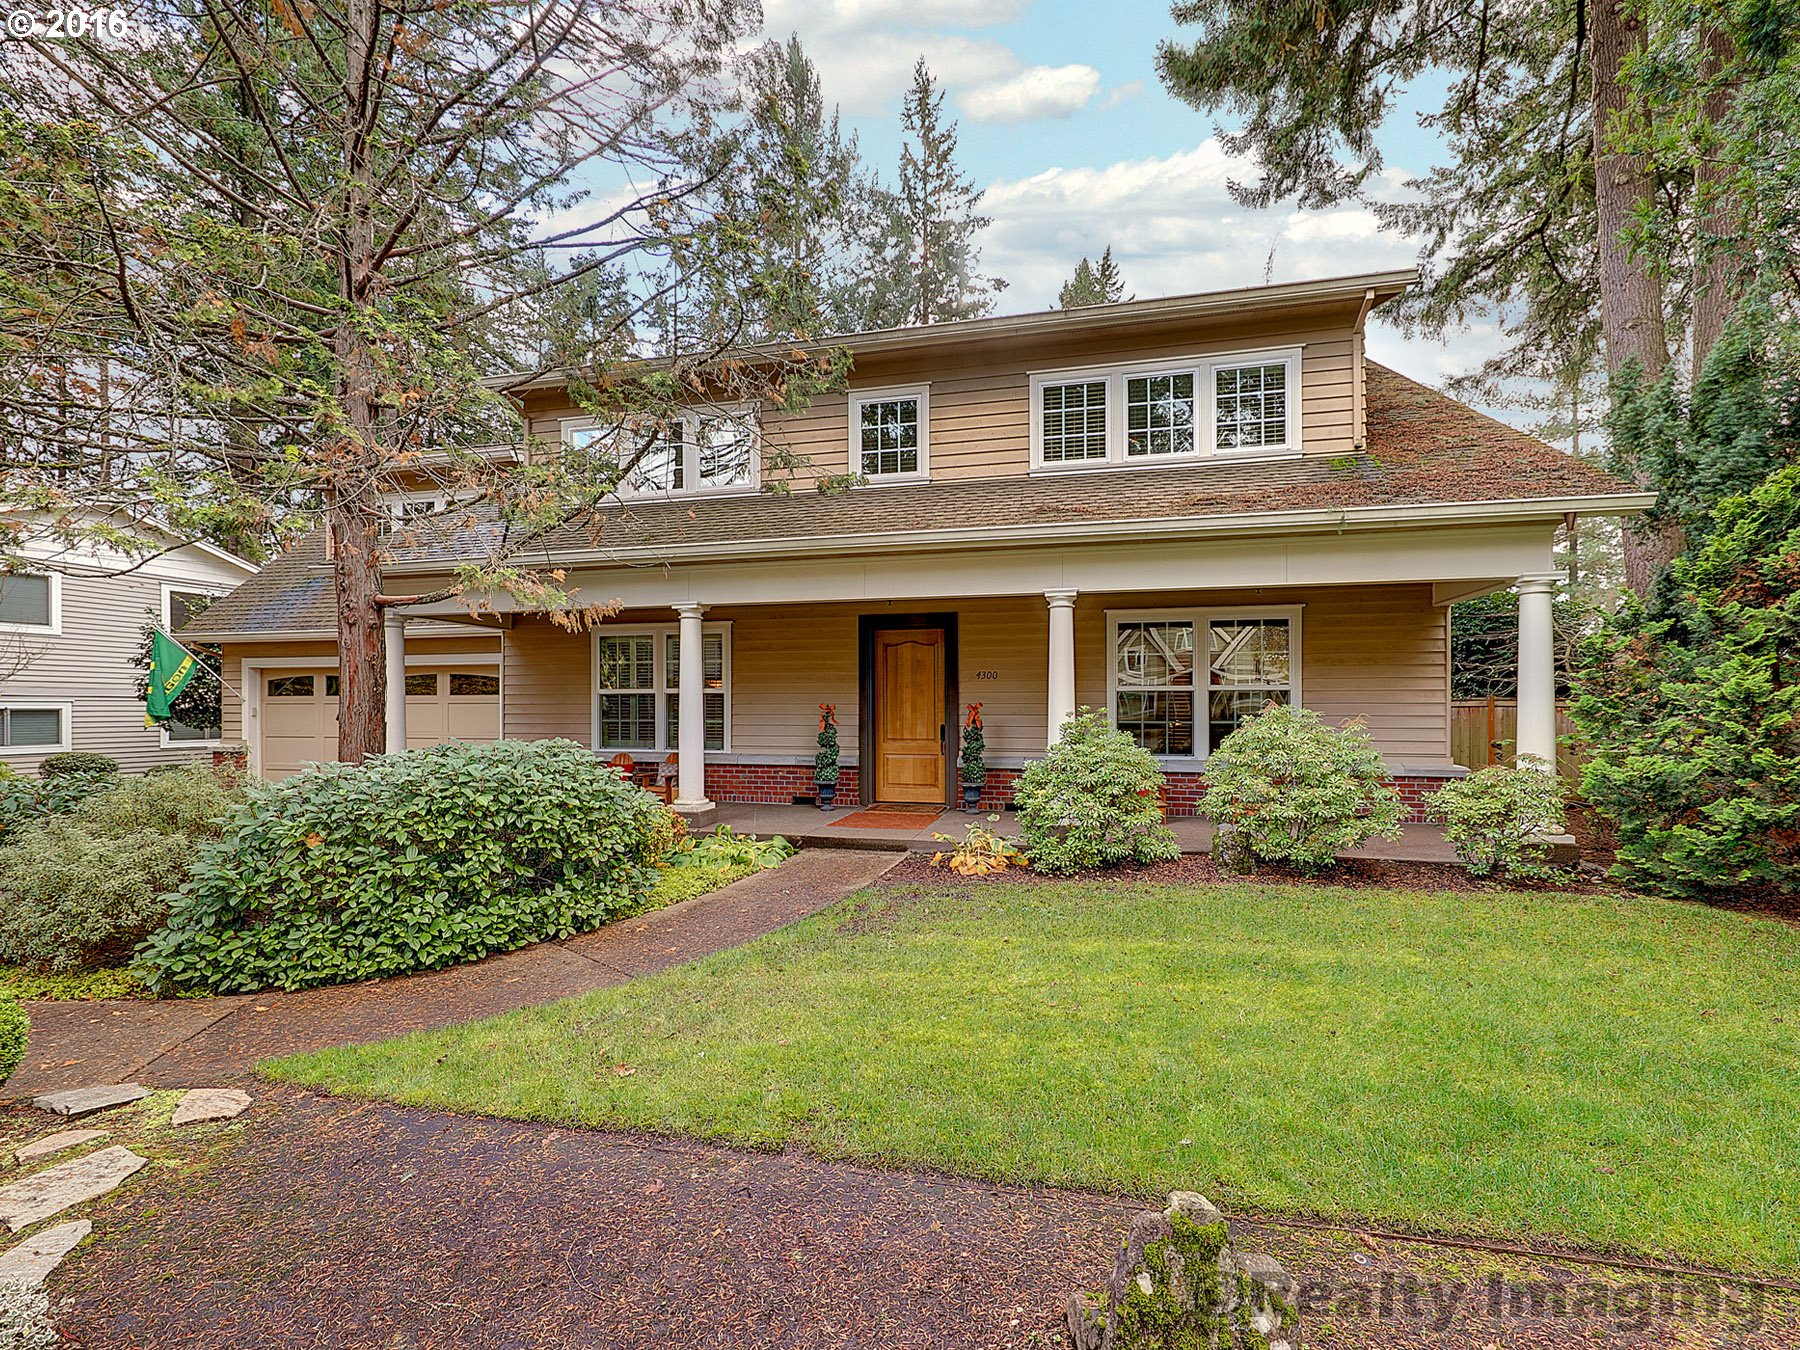 4300 HAVEN ST, Lake Oswego, OR 97035